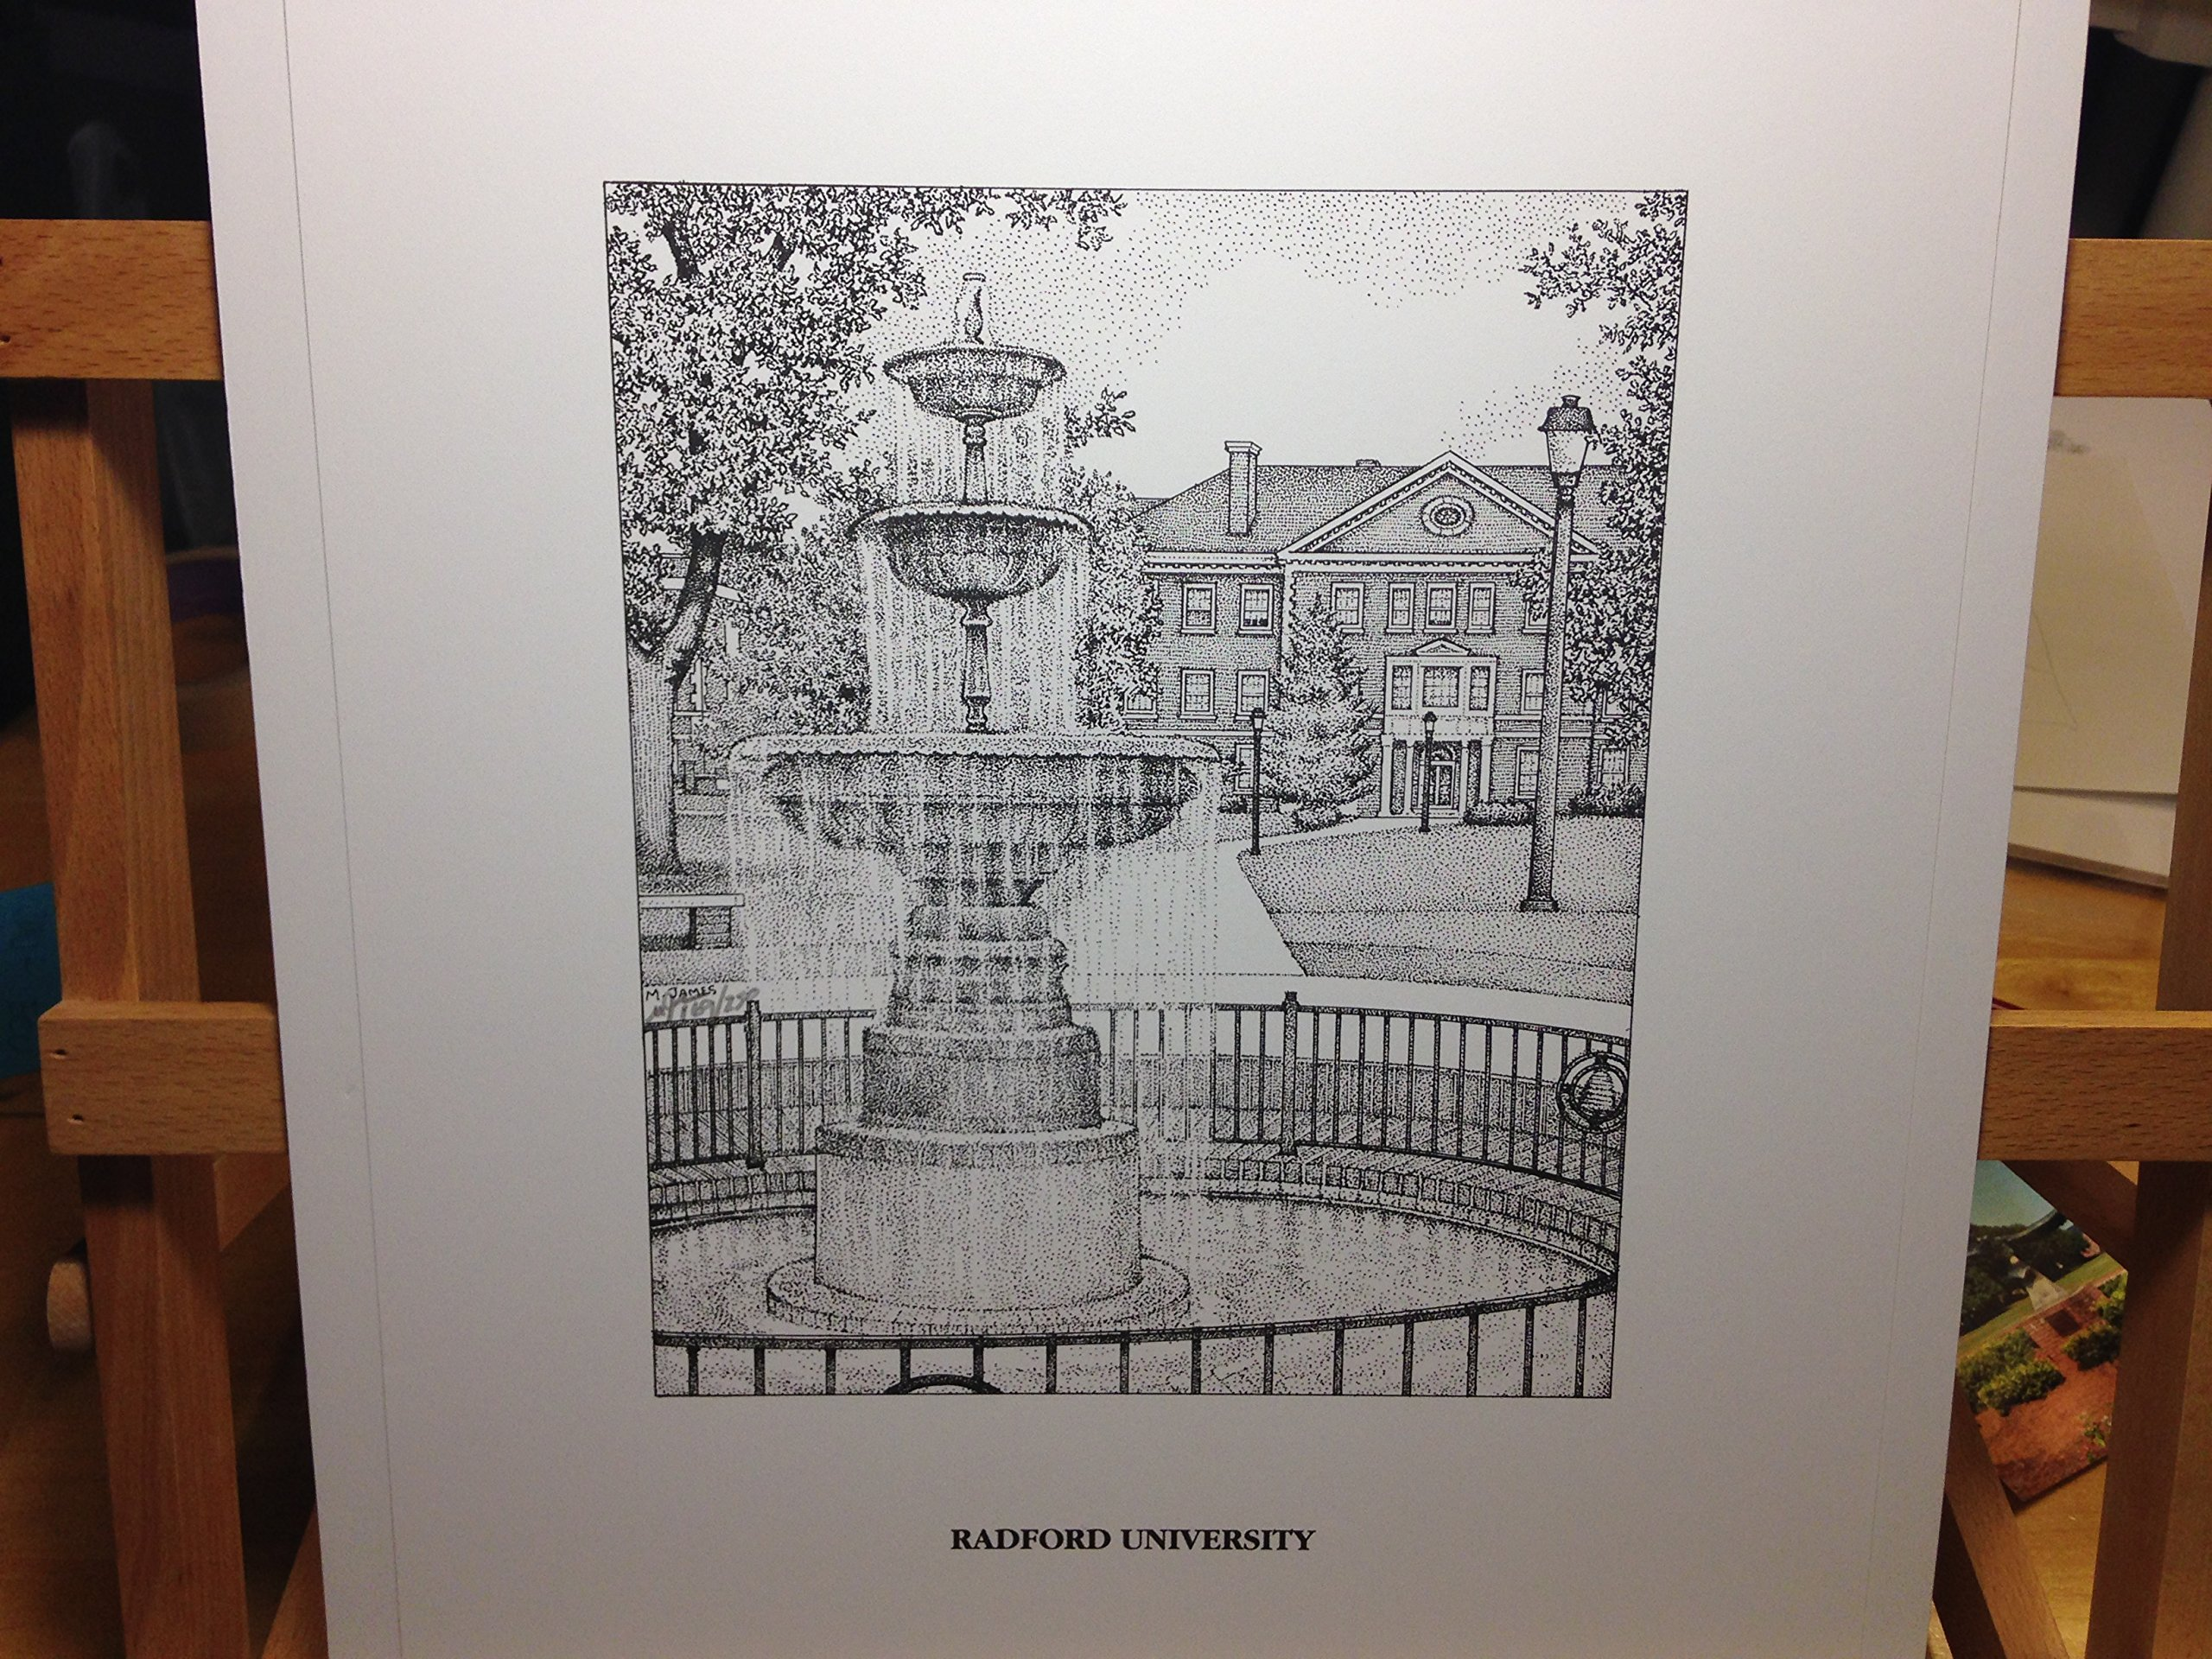 Radford University - Fountain 11''x14'' pen and ink print by Campus Scenes